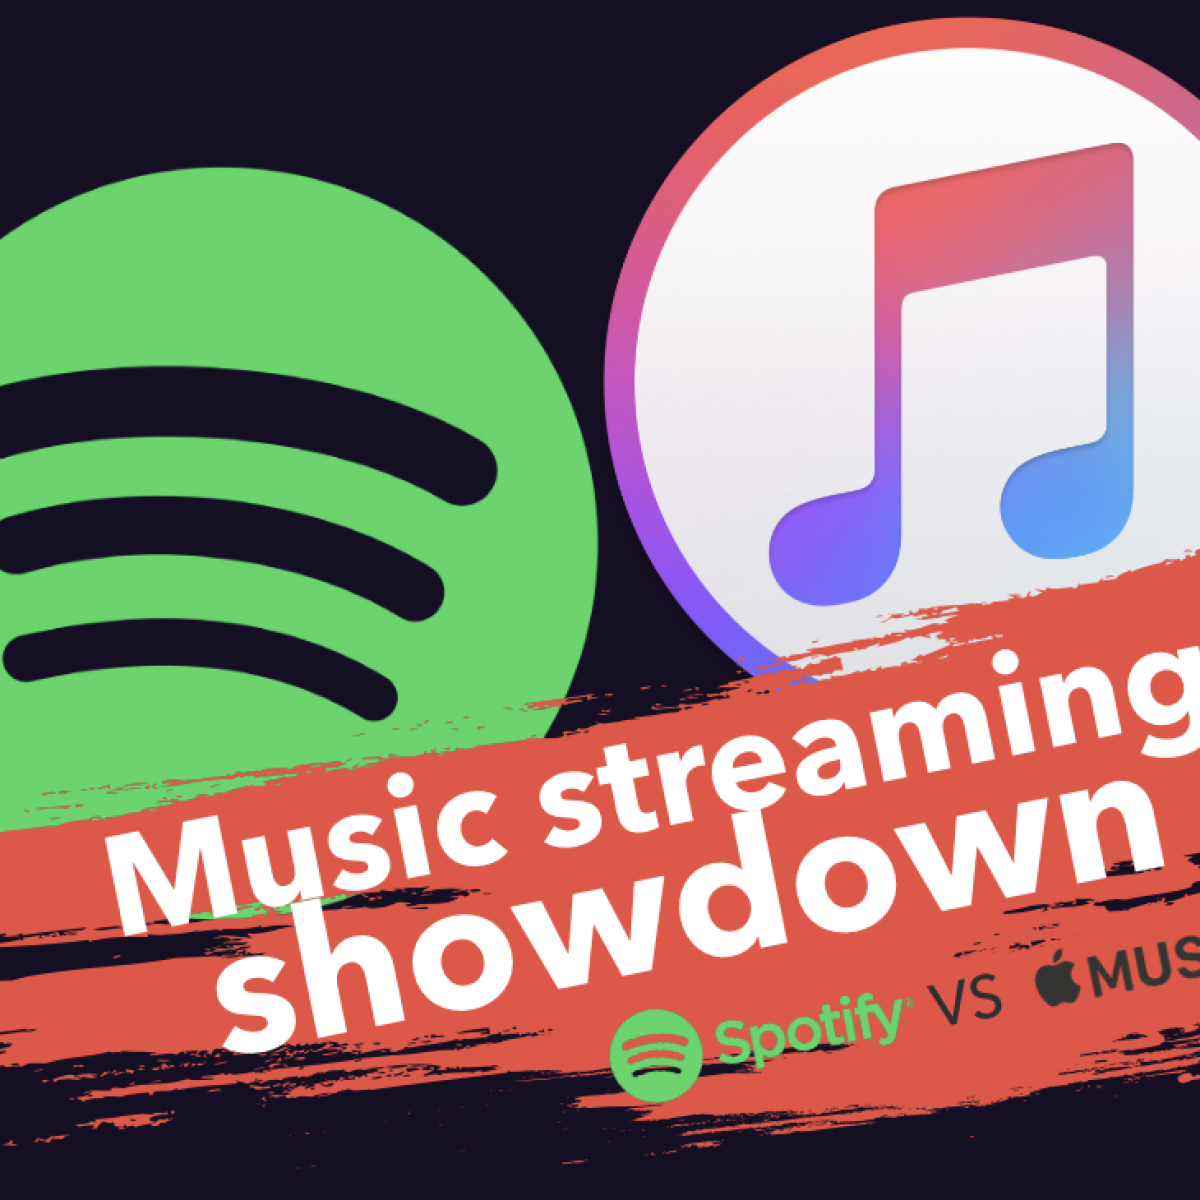 Survey Shows Students Prefer Spotify For Streaming Music Apple Music Is Runner Up You will be found (1 hour) dear evan hansen. survey shows students prefer spotify